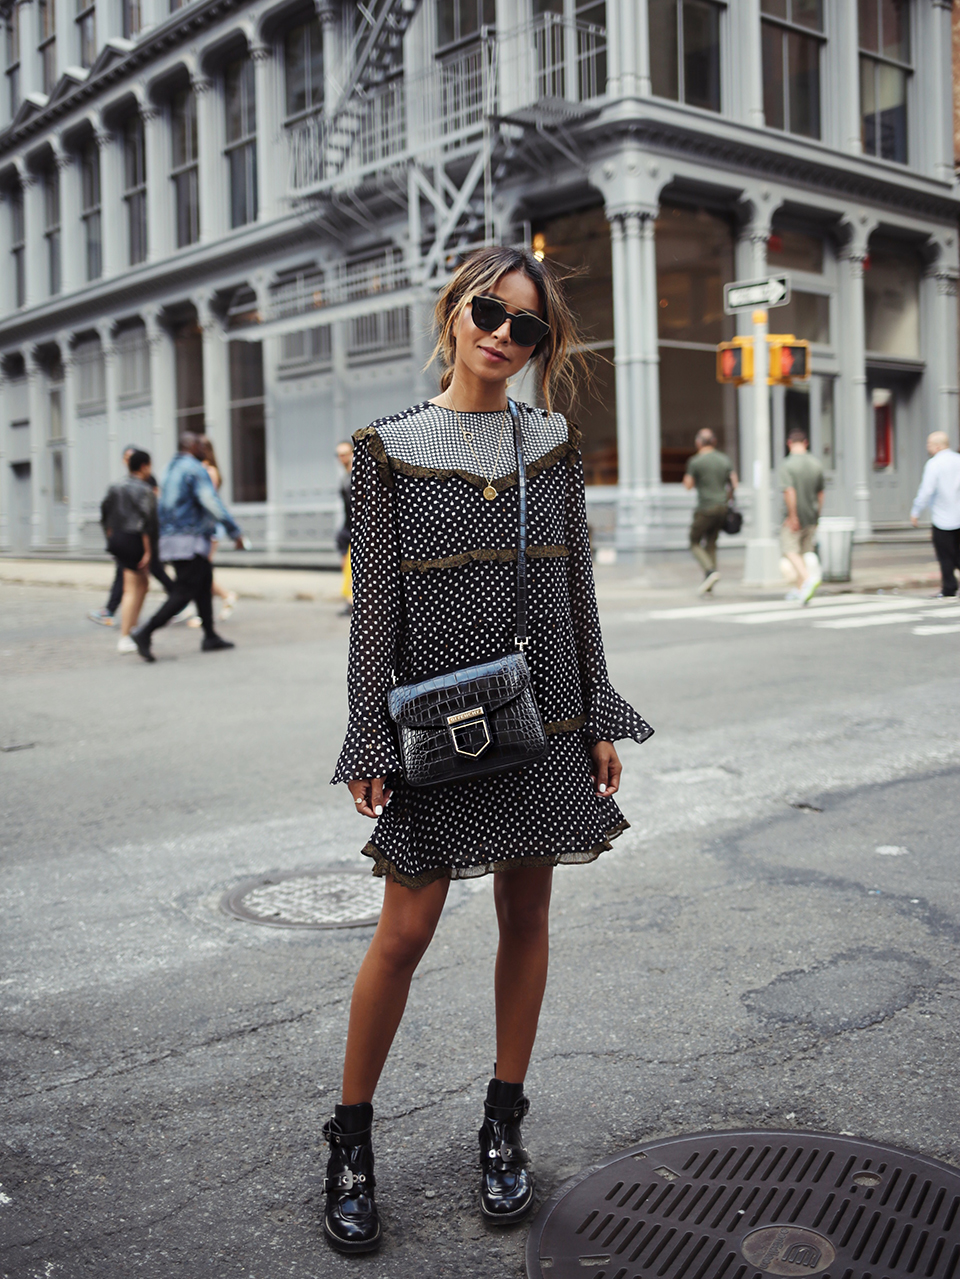 Photo courtesy of:  sincerelyjules.com